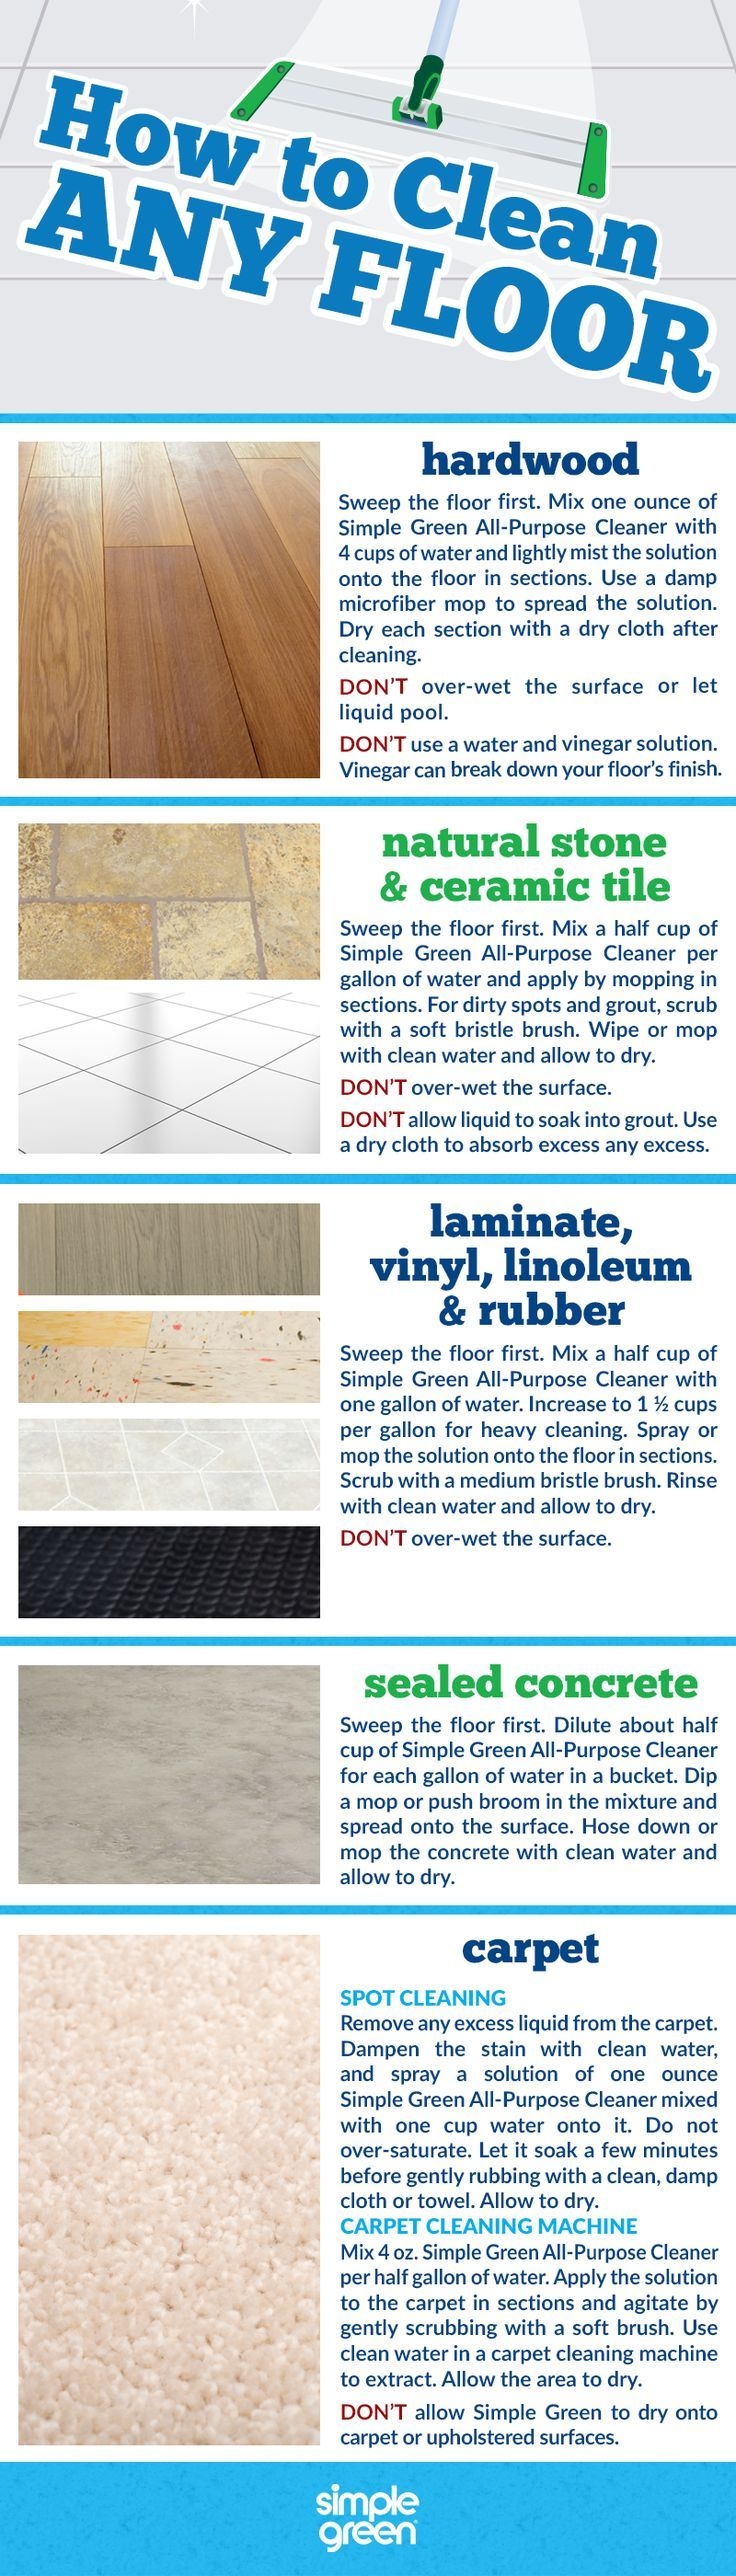 Clean Hardwood Stone Tile Concrete Or Even Linoleum Floors And Carpet With Just One Cleaner Simple Green All Cleaning Household Cleaning Hacks Clean Tile